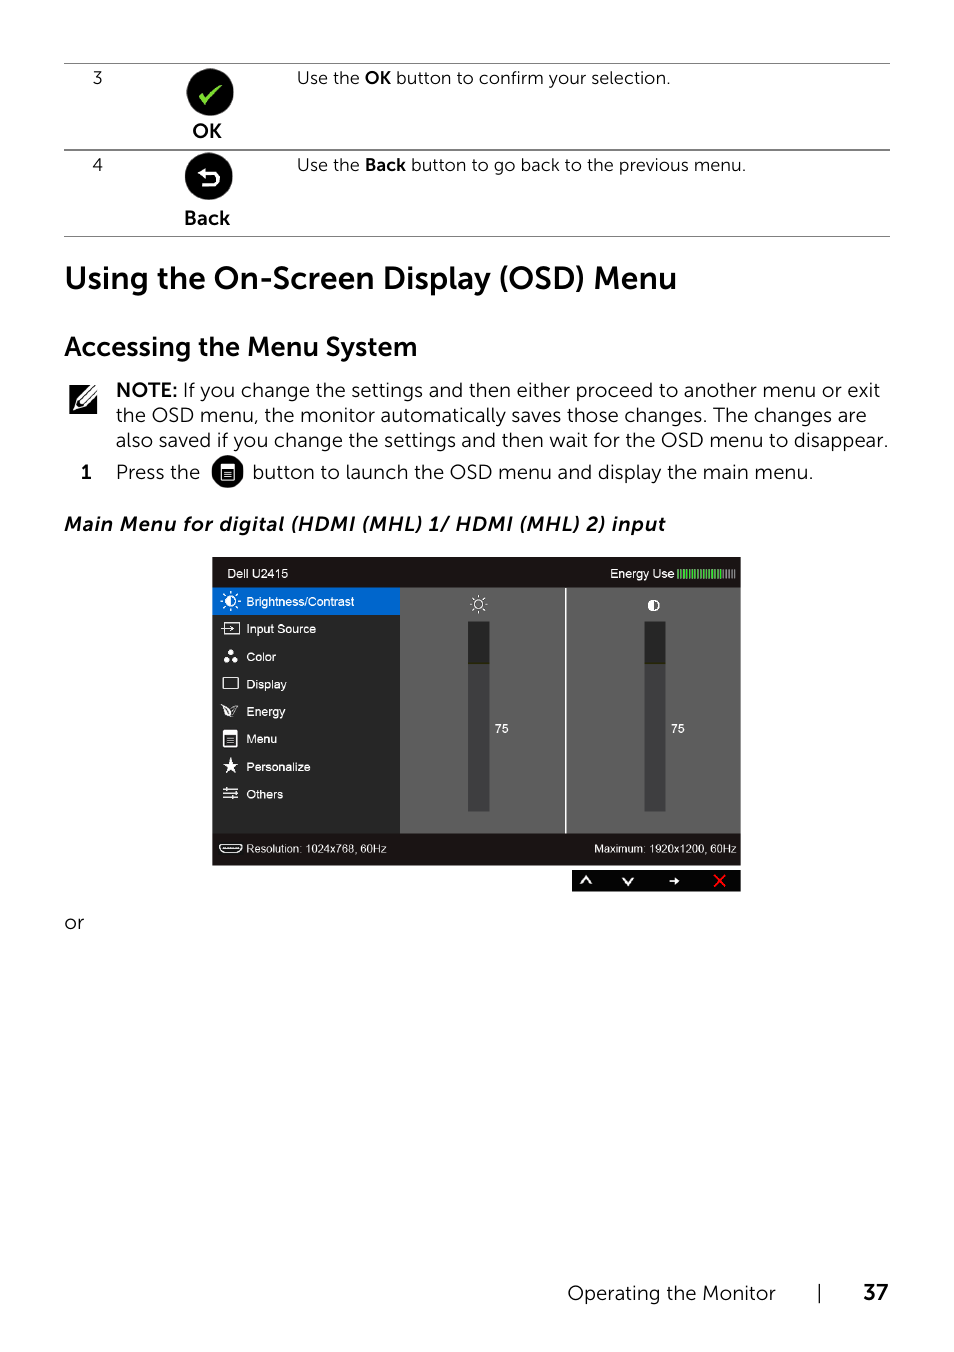 Using the on-screen display (osd) menu, Menu (see, Accessing the